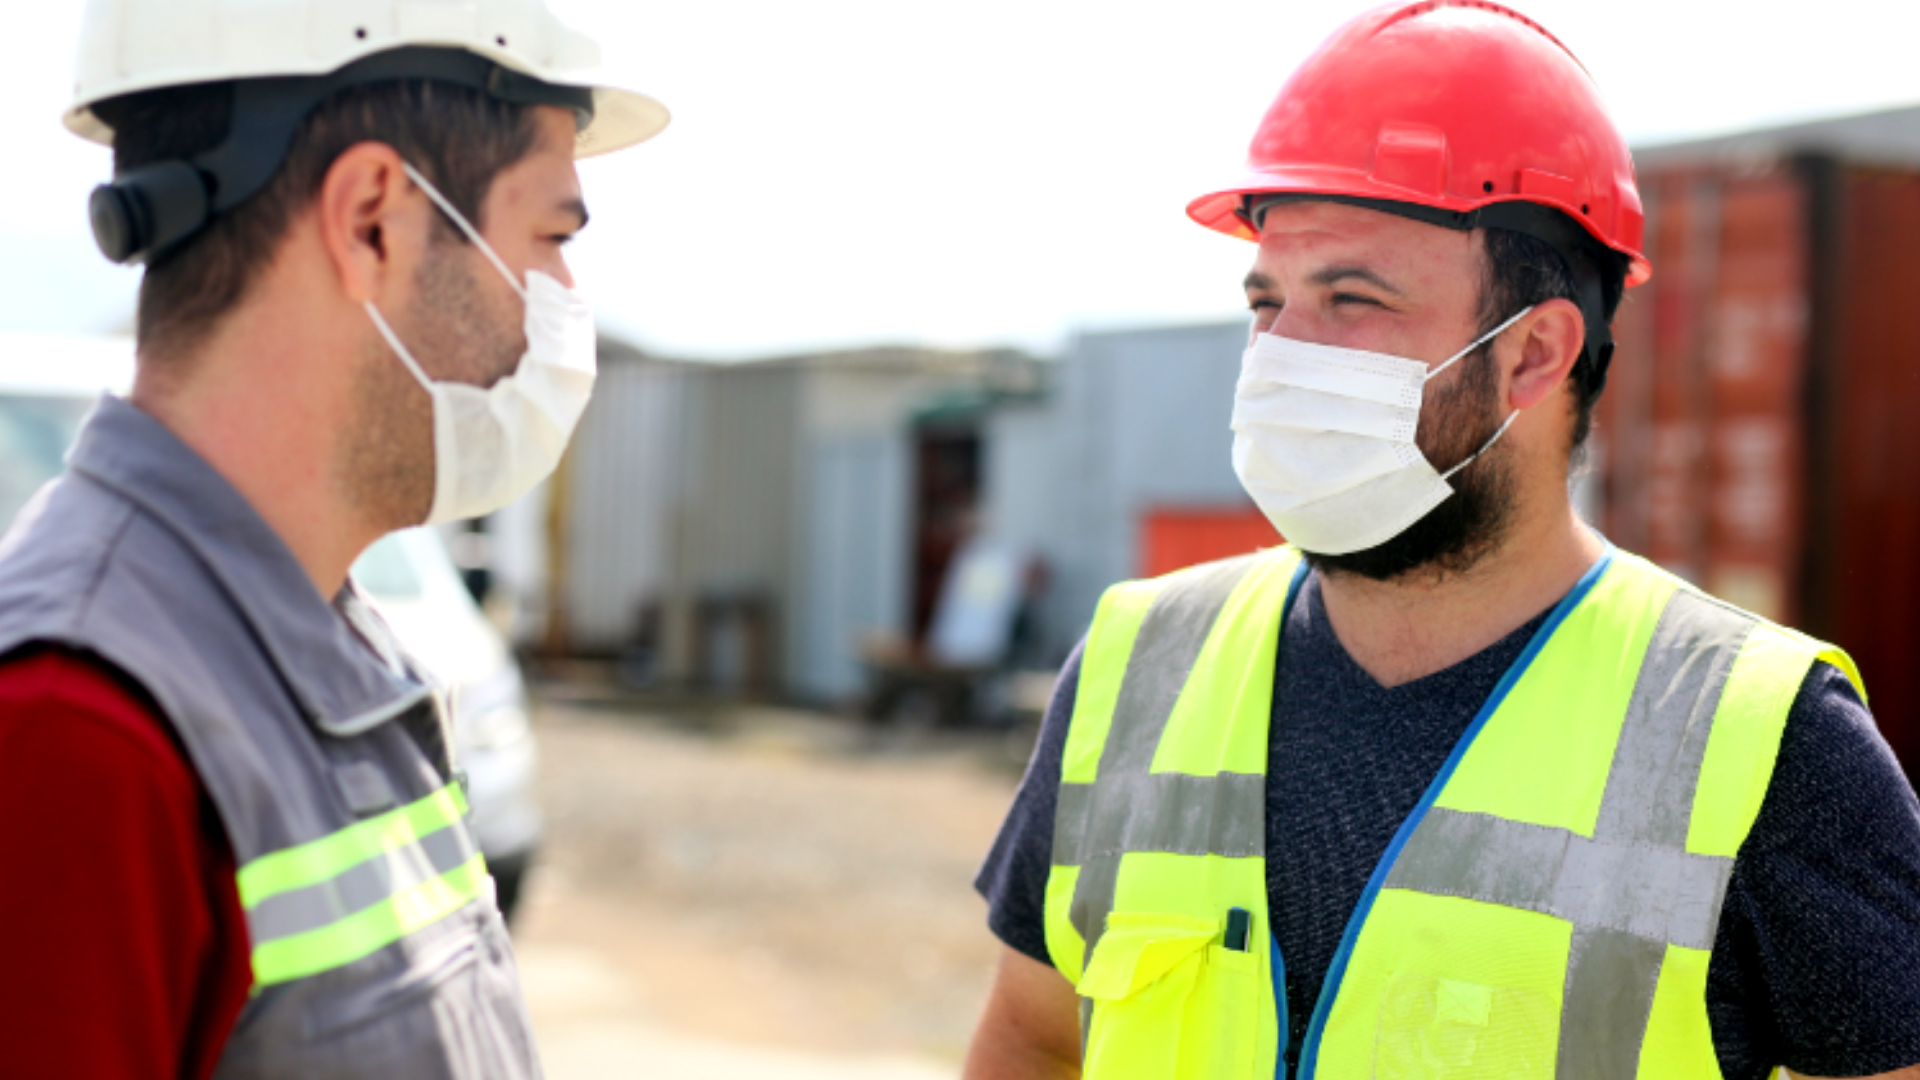 Two construction workers having a conversation while social distancing with masks on.